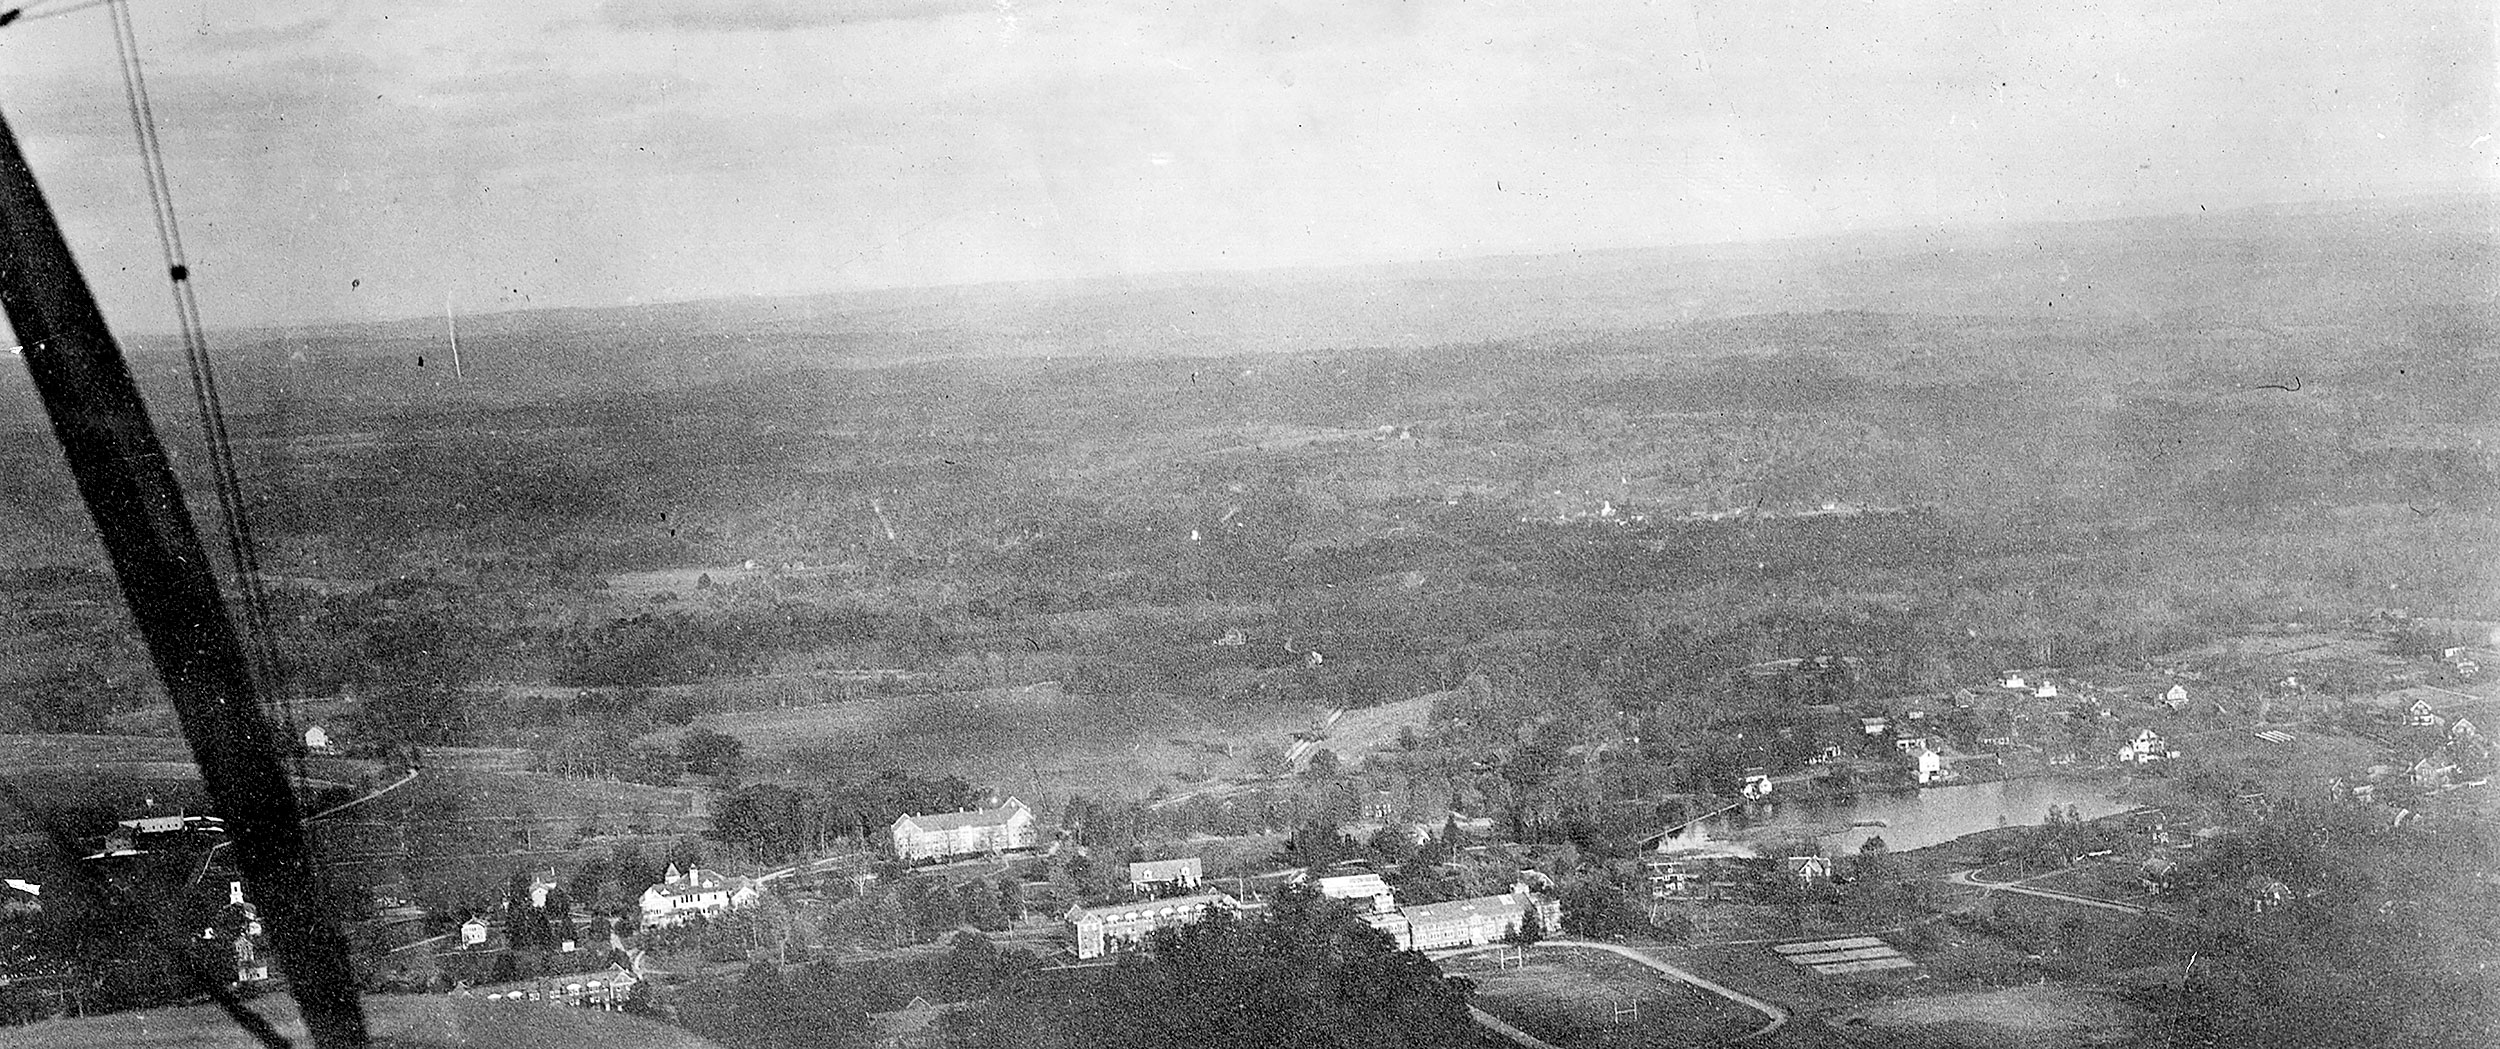 1925 aerial biplane photograph shows Mirror Lake to the right and Horsebarn Hill to the left.